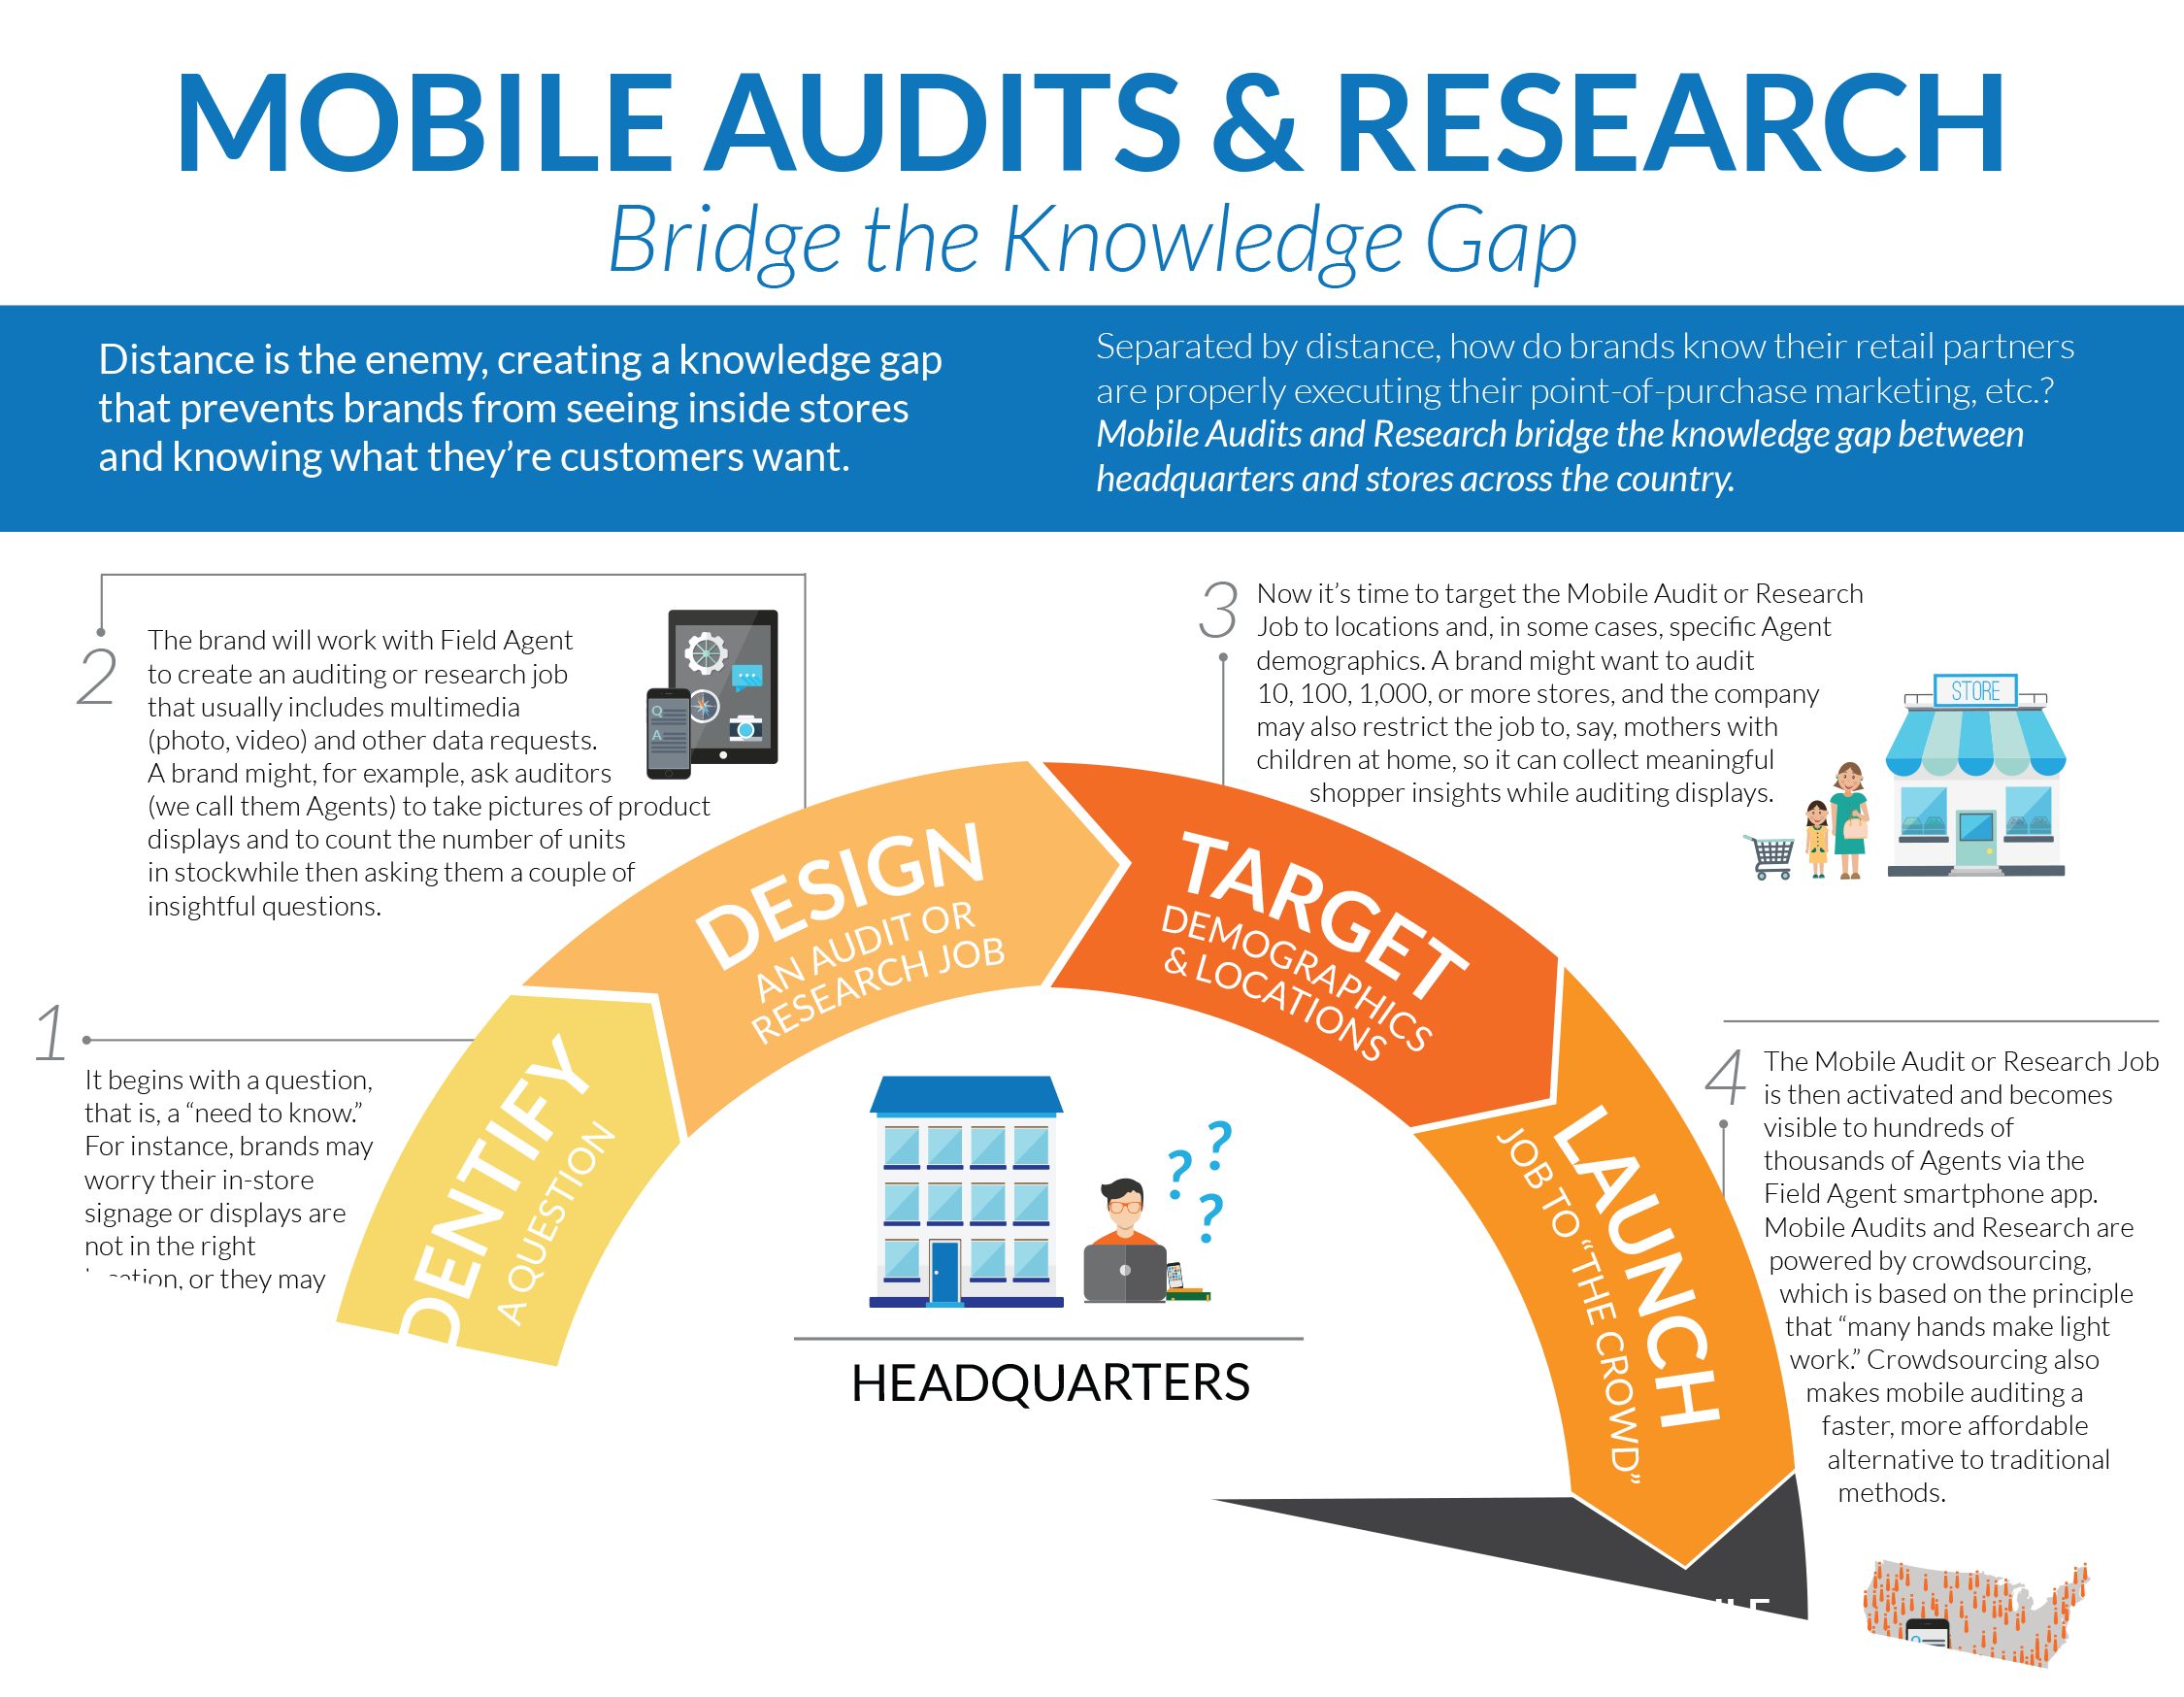 Mobile Audits & Research Bridge the Knowledge Gap Infographic